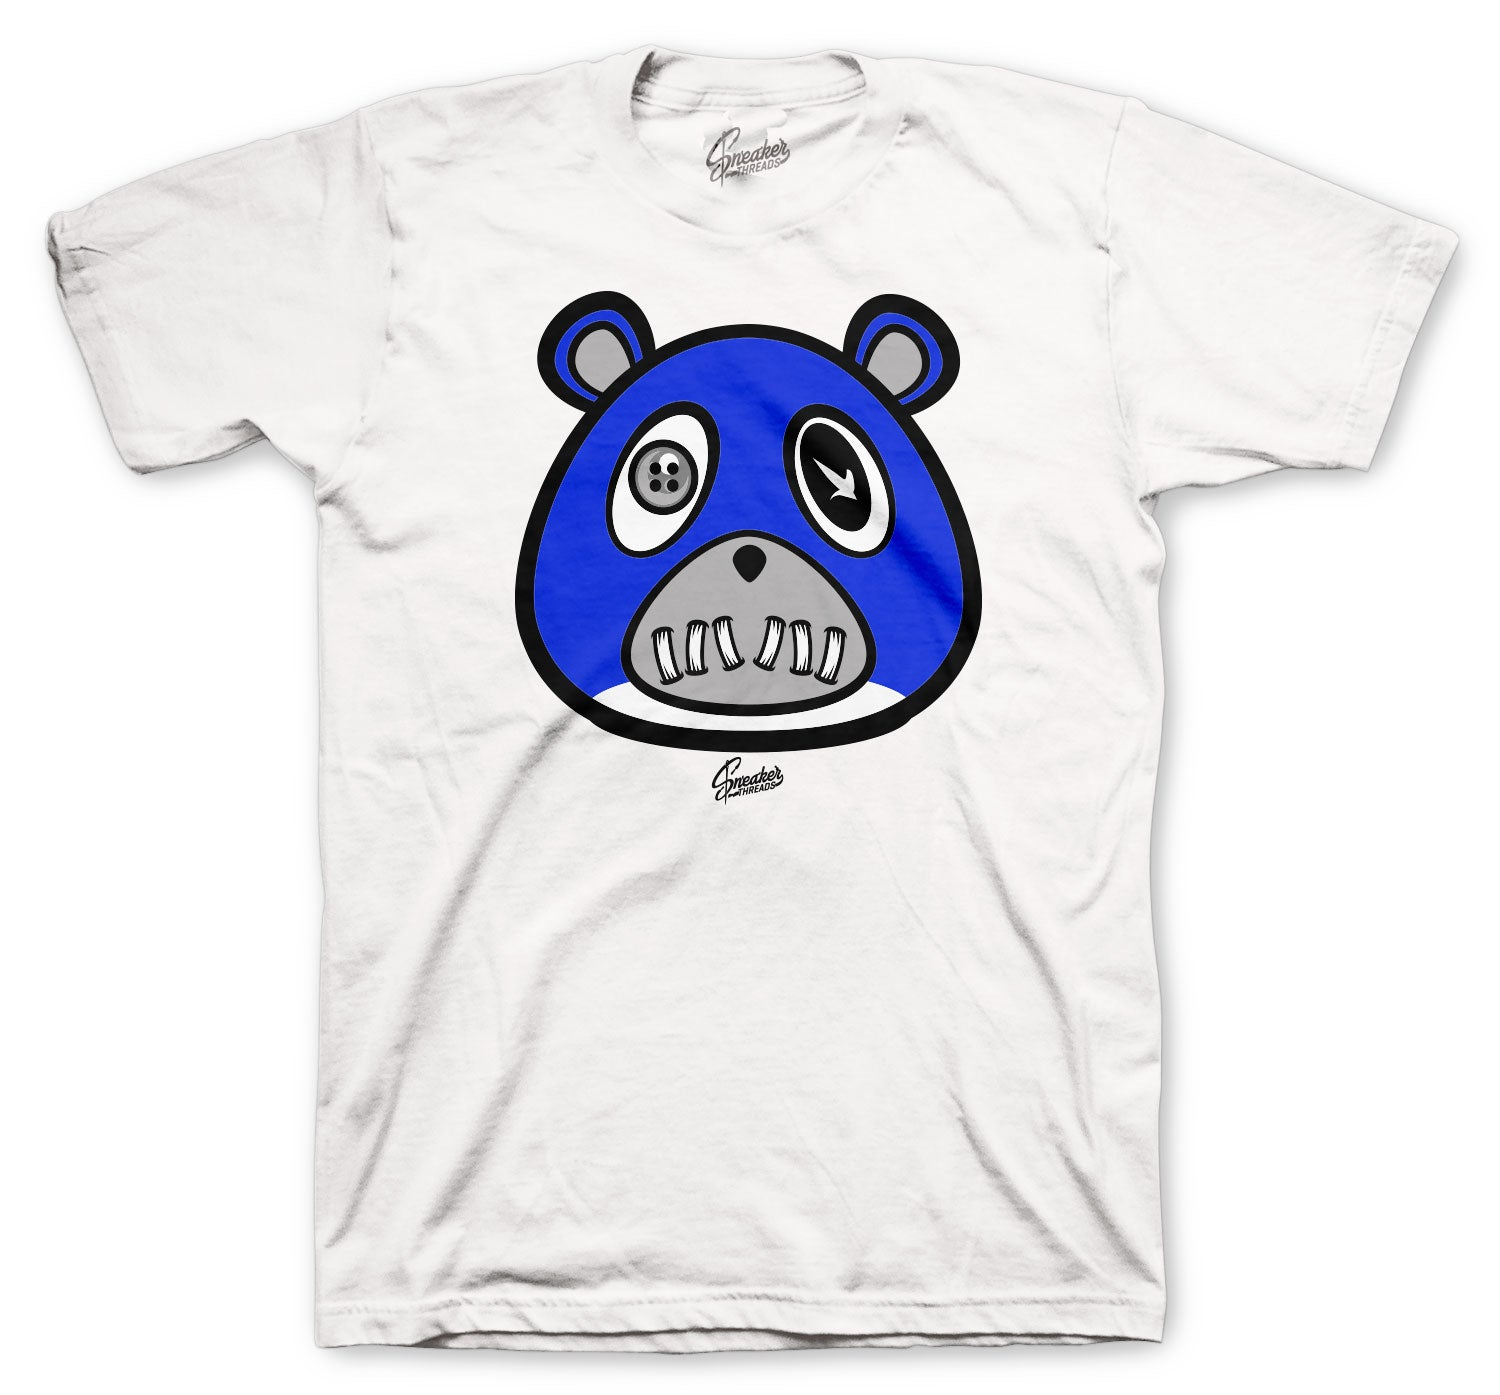 Jordan 14 Hyper Royal ST Bear Shirt